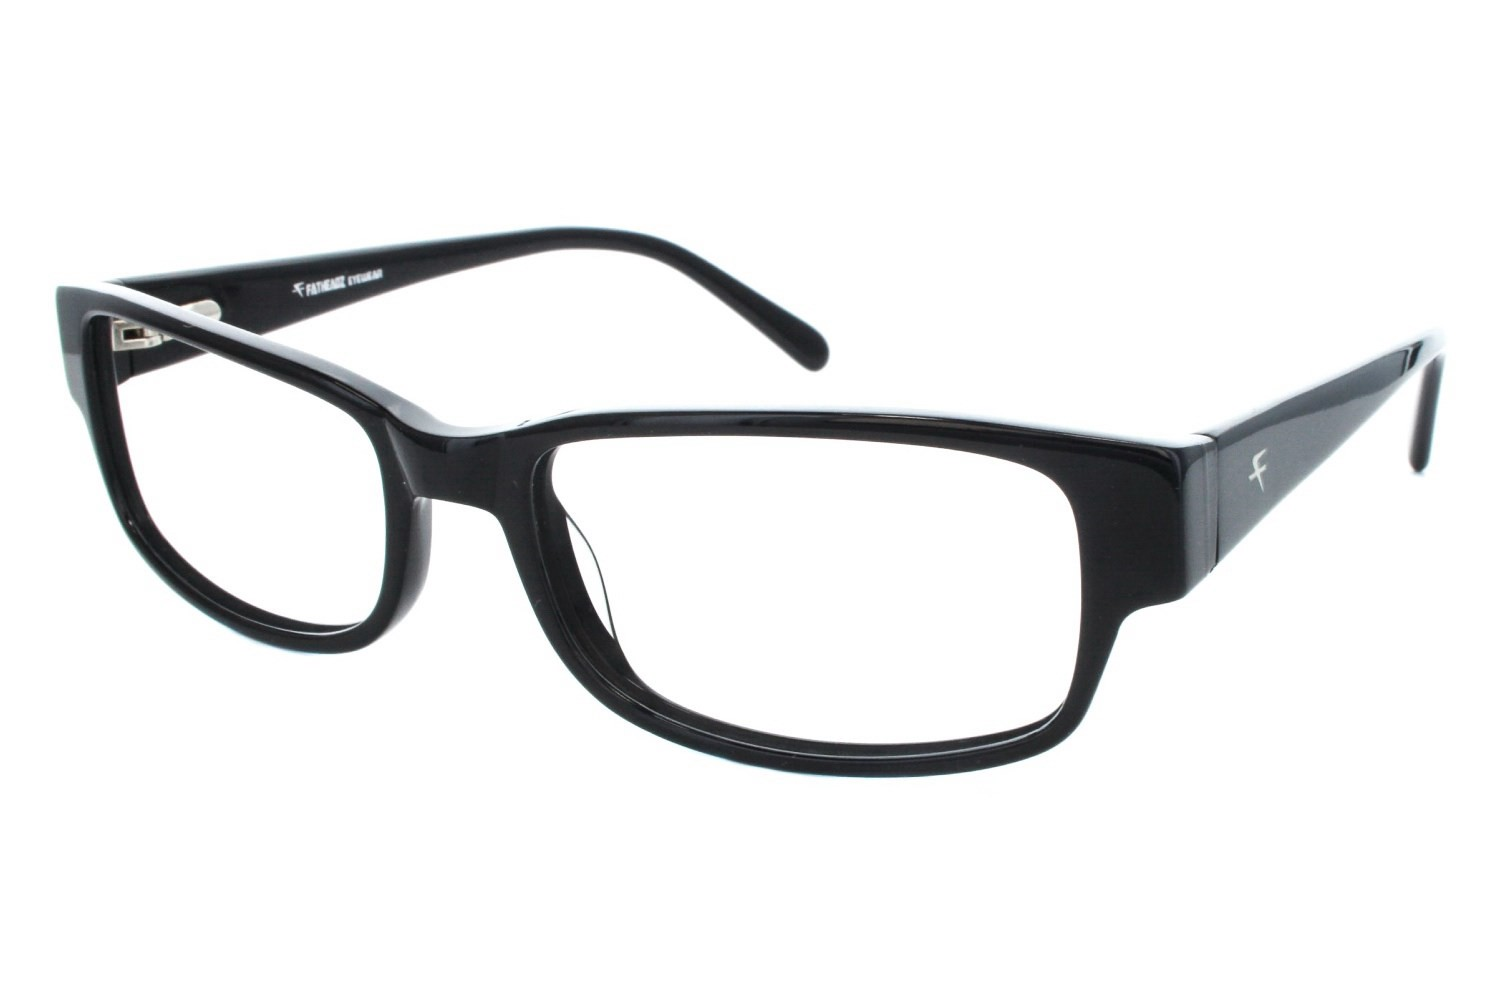 25cad60cde Review Fatheadz Jaxsonian Prescription Eyeglasses – Review Contact ...